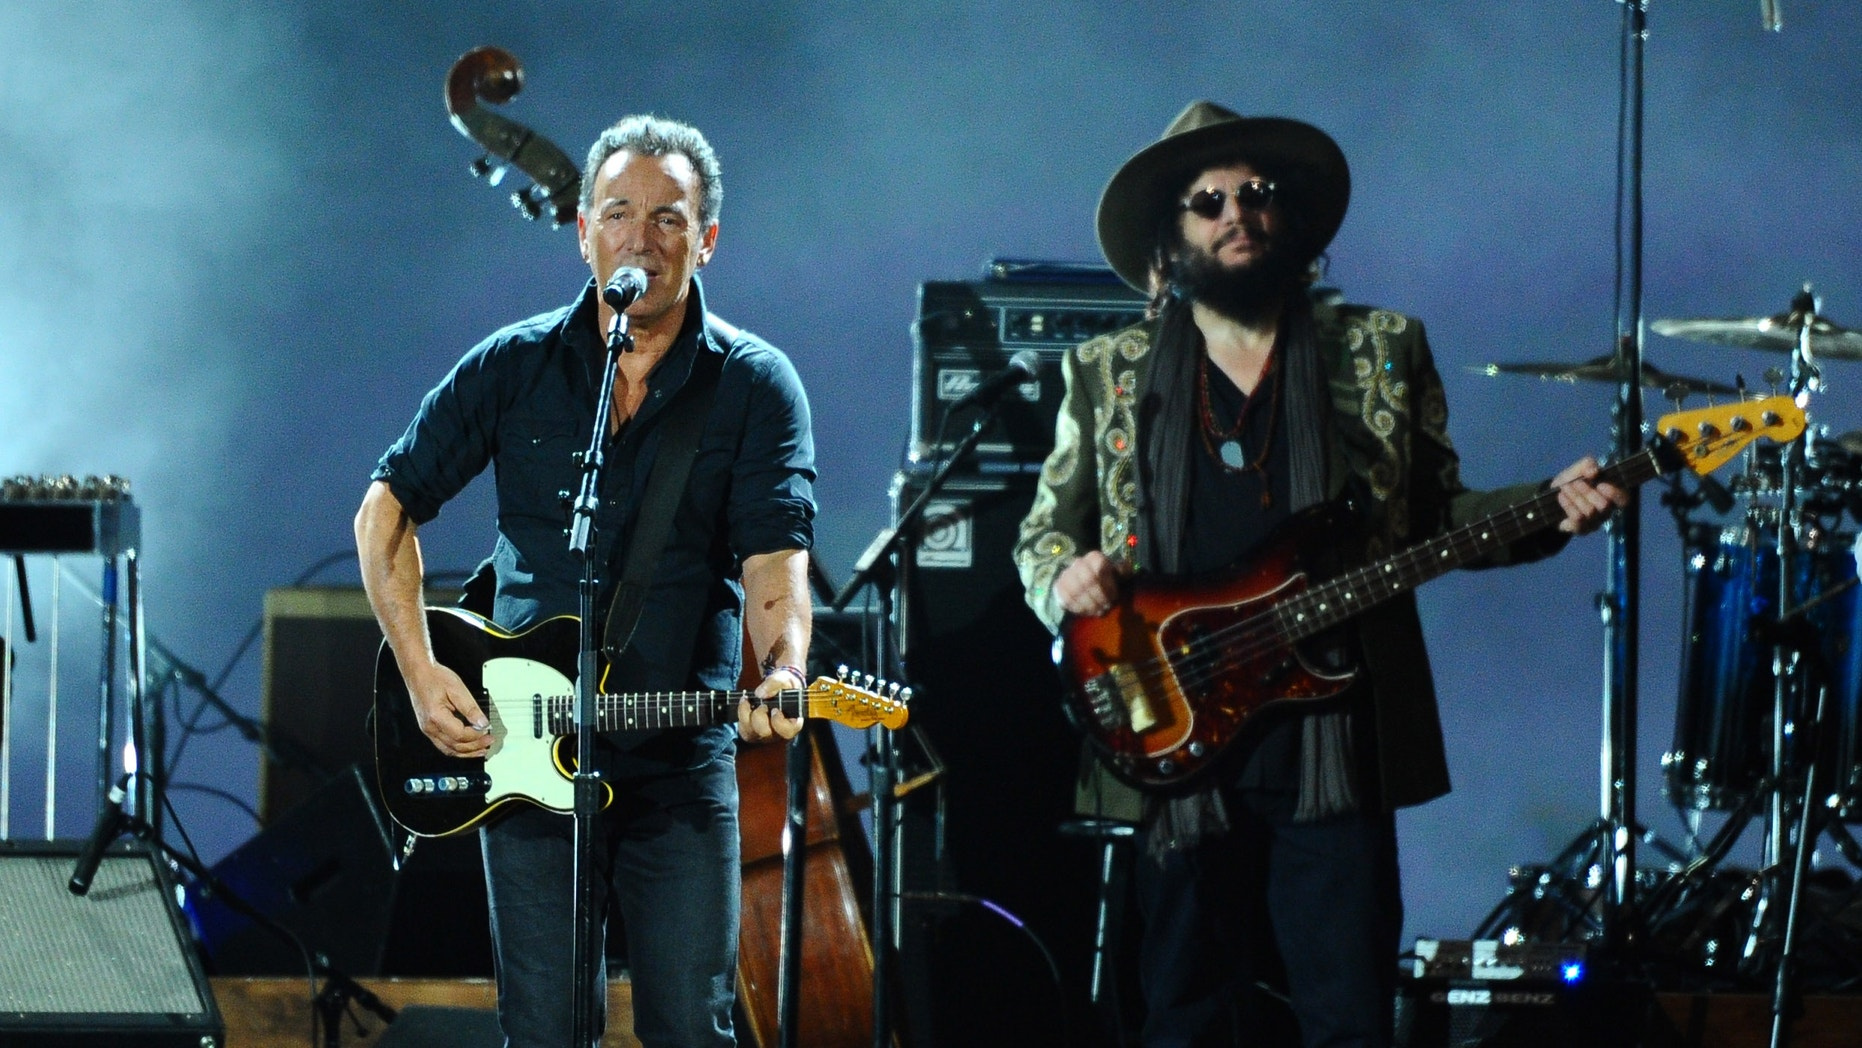 Feb 6, 2015. Bruce Springsteen, left, and Don Was perform on stage at the 2015 MusiCares Person of the Year show at the Los Angeles Convention Center in Los Angeles.